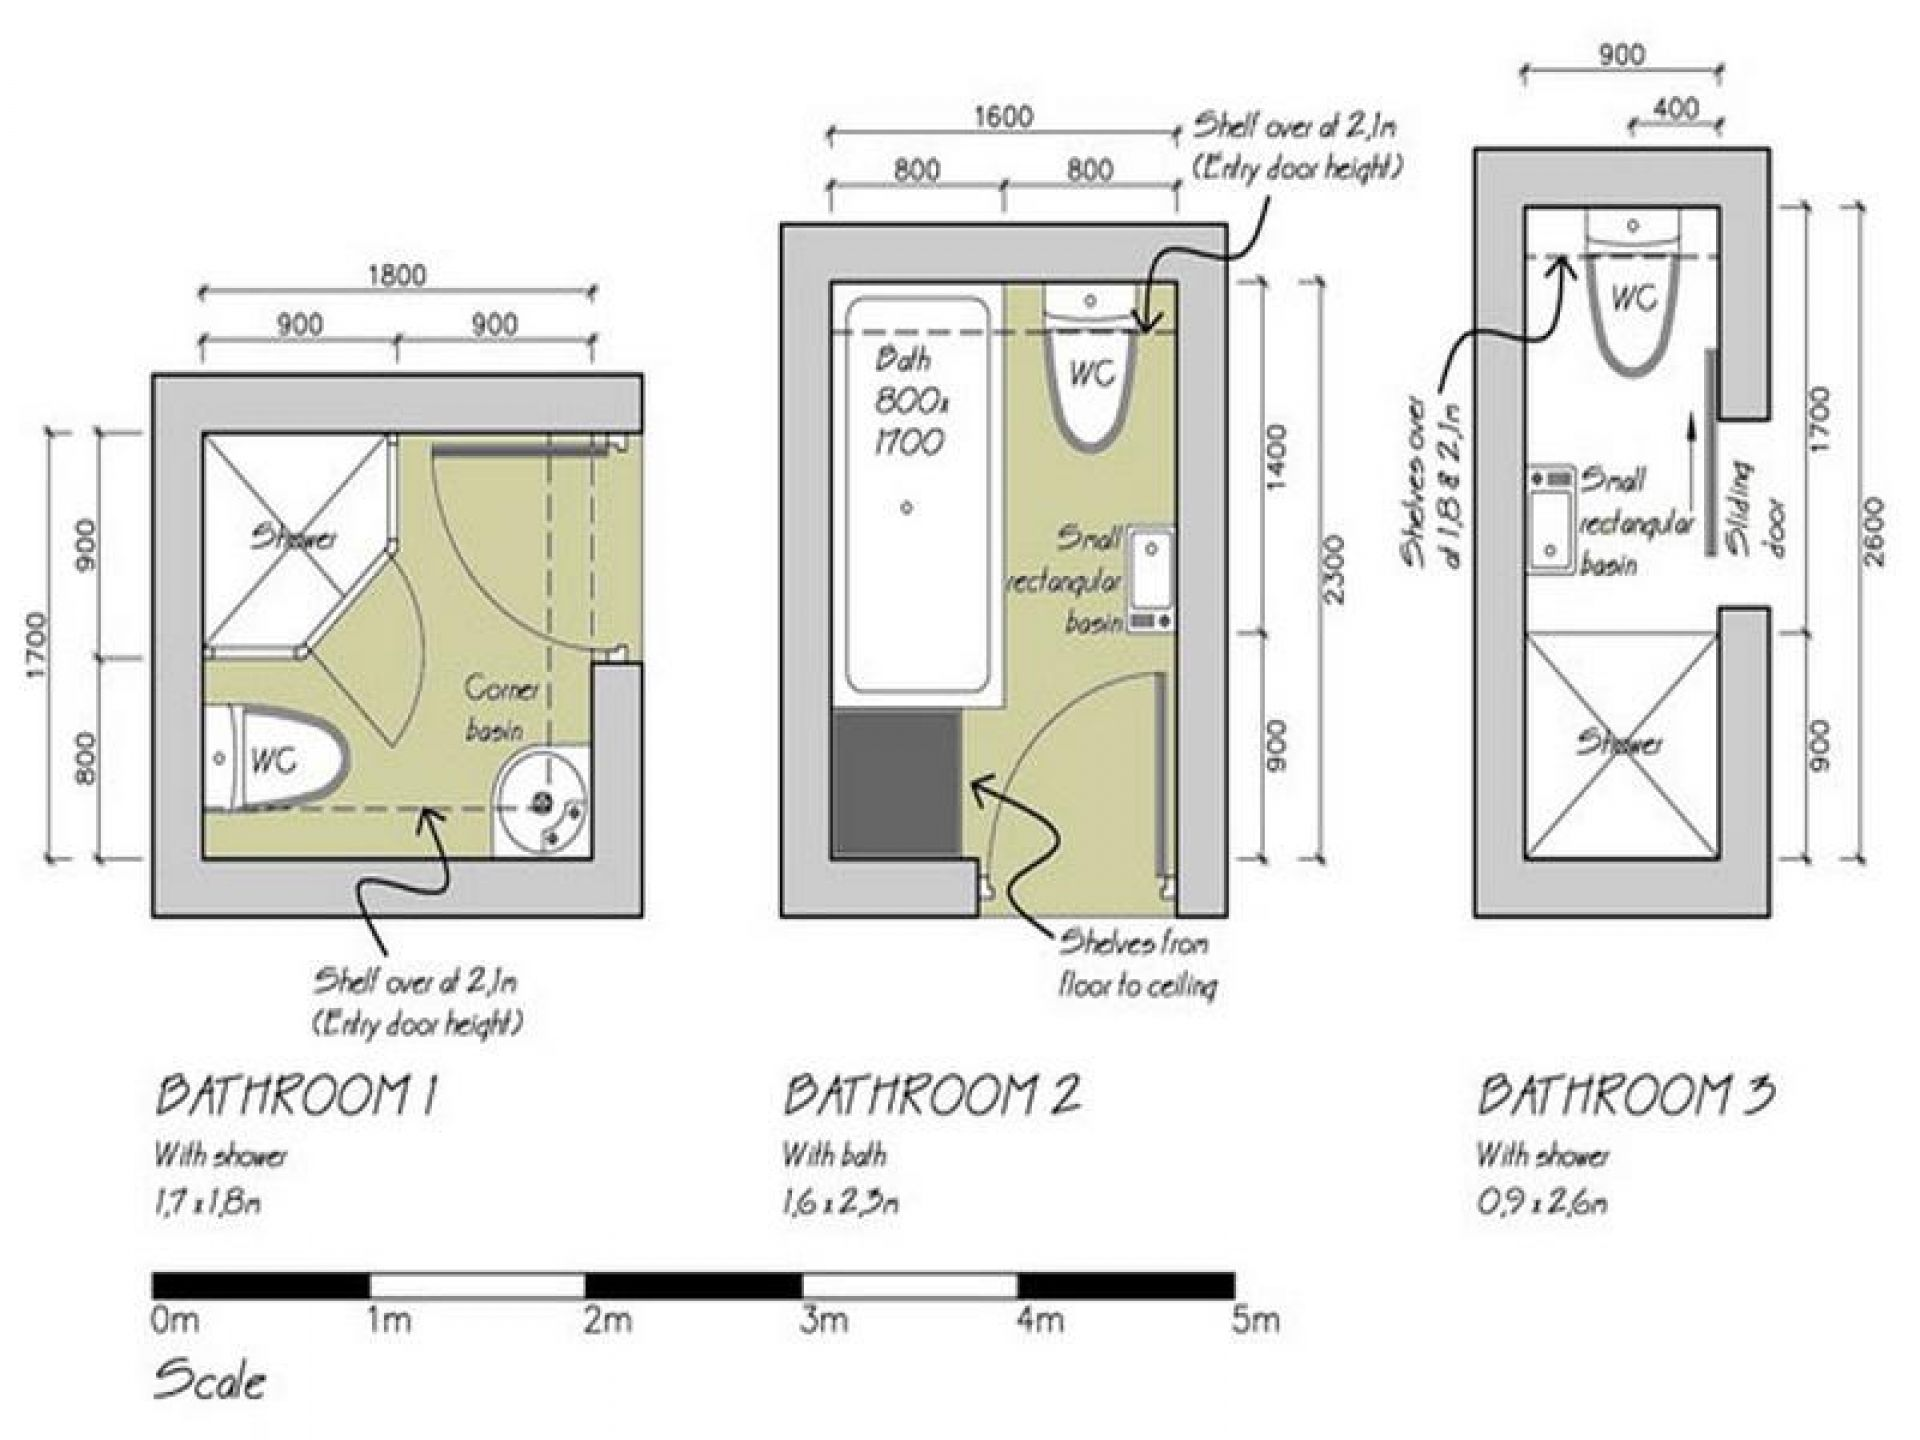 Small Bathroom Design Layout Epic Small Bathroom Floor Plans With Small Bathtub And Single